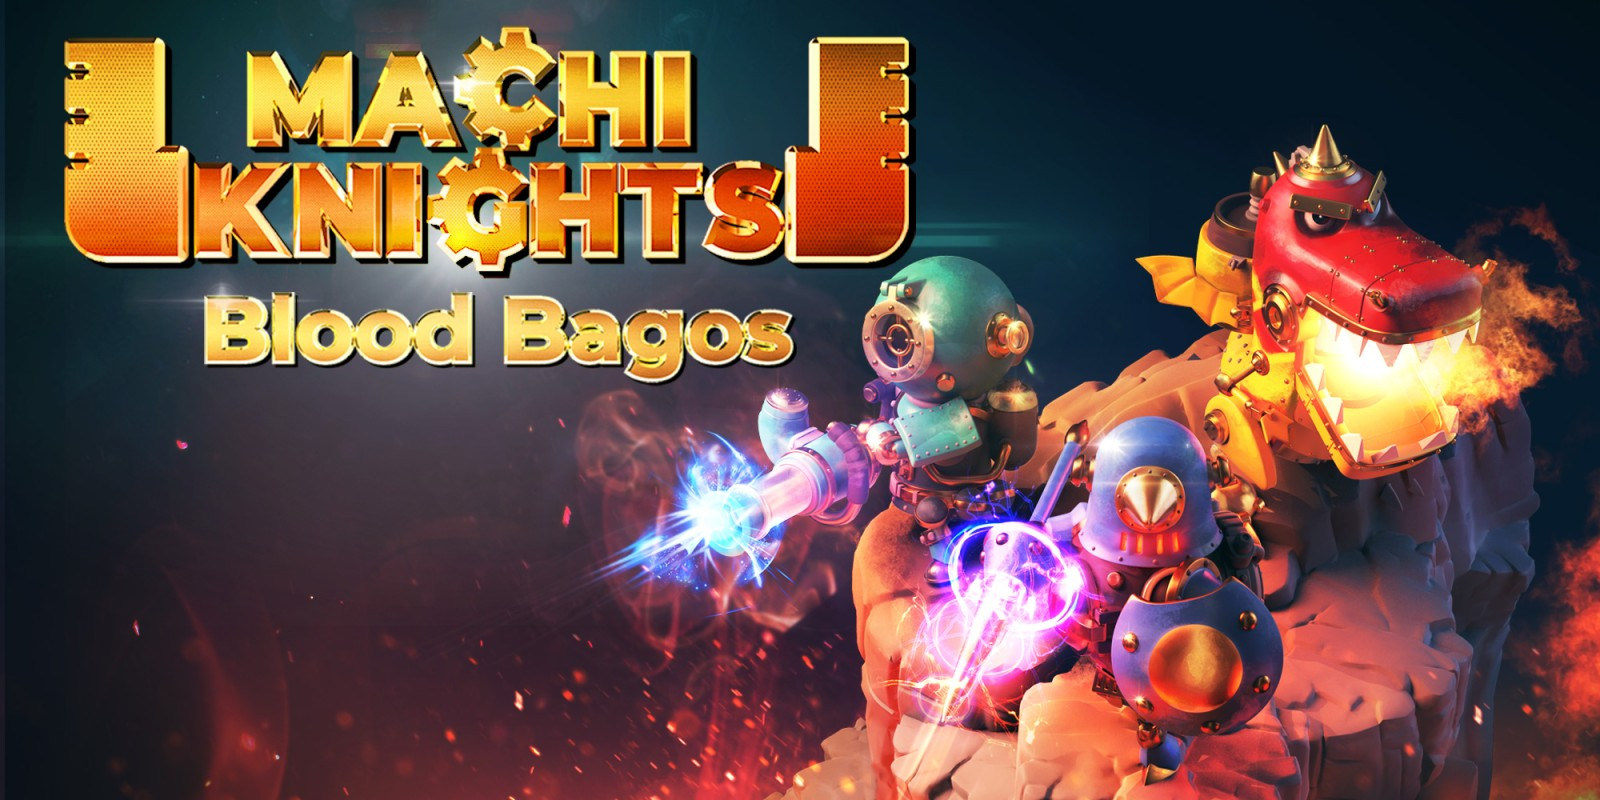 MachiKnights Blood Bagos Nintendo Switch Review